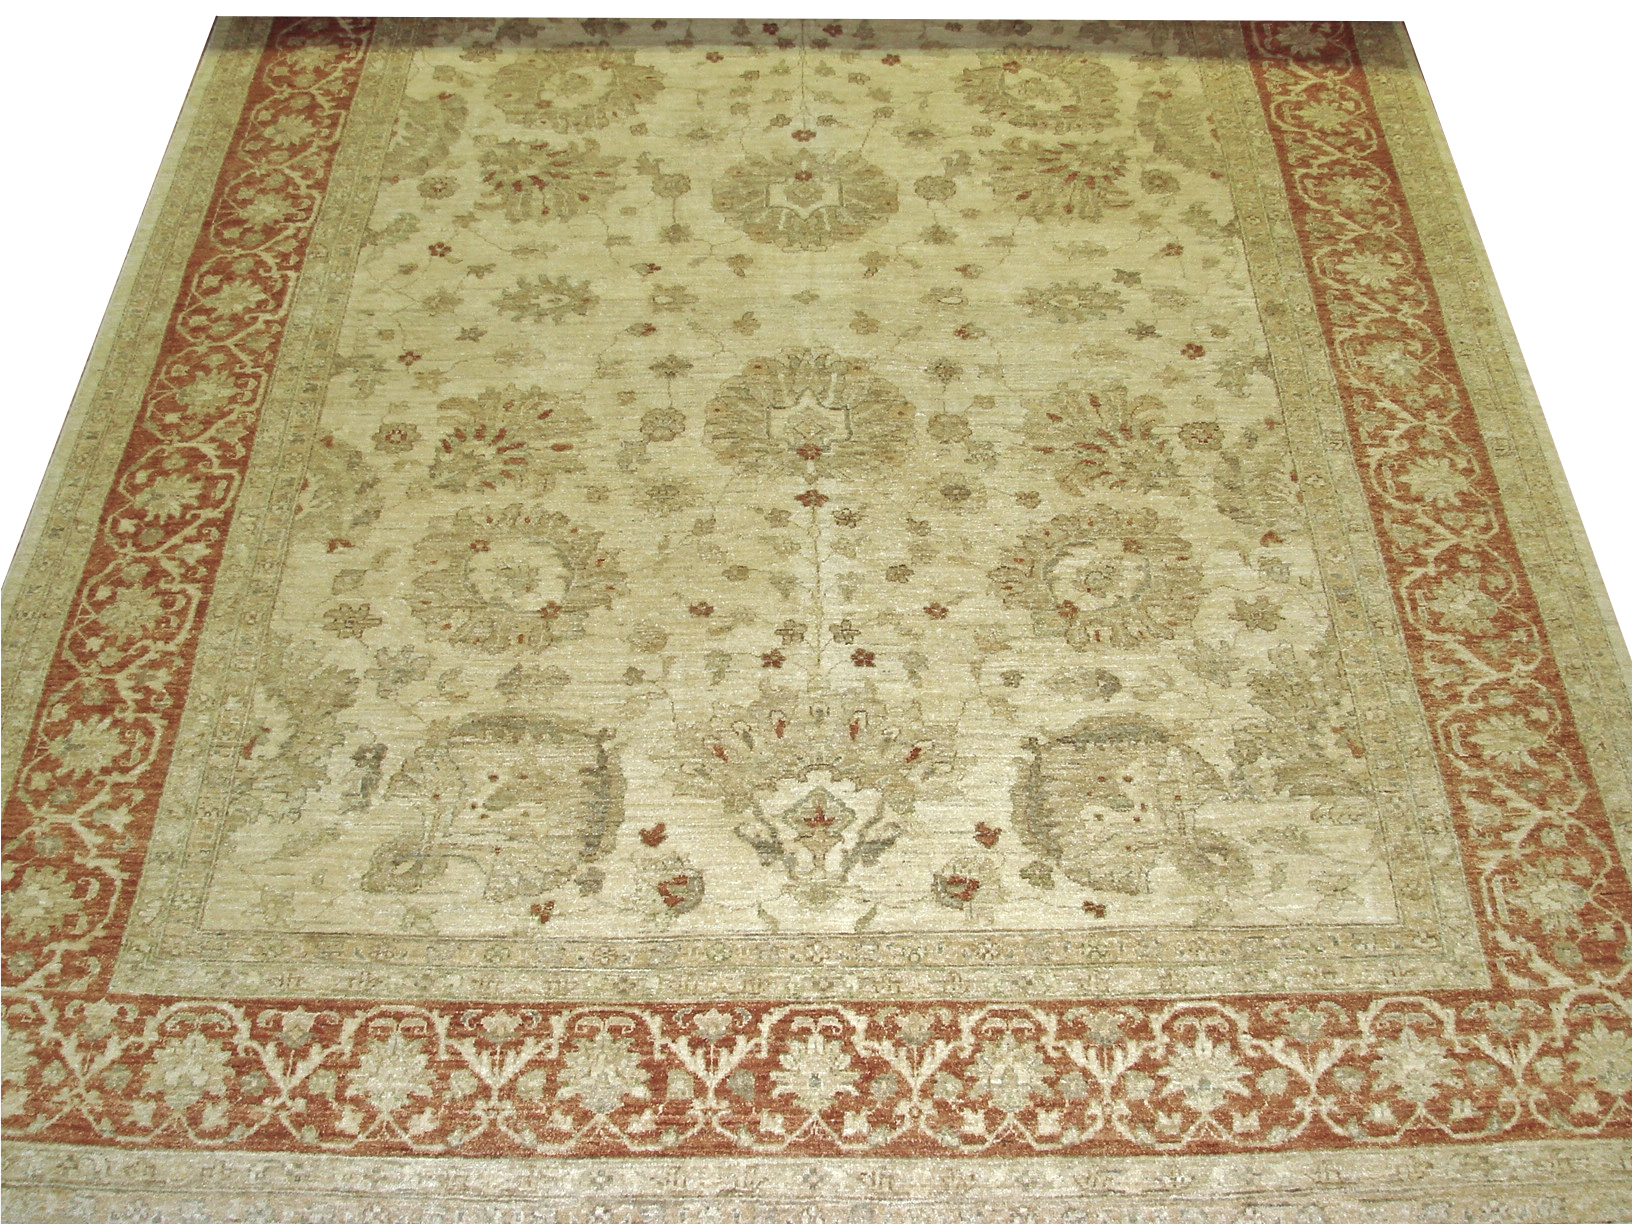 9x12 Peshawar Hand Knotted Wool Area Rug - MR13358